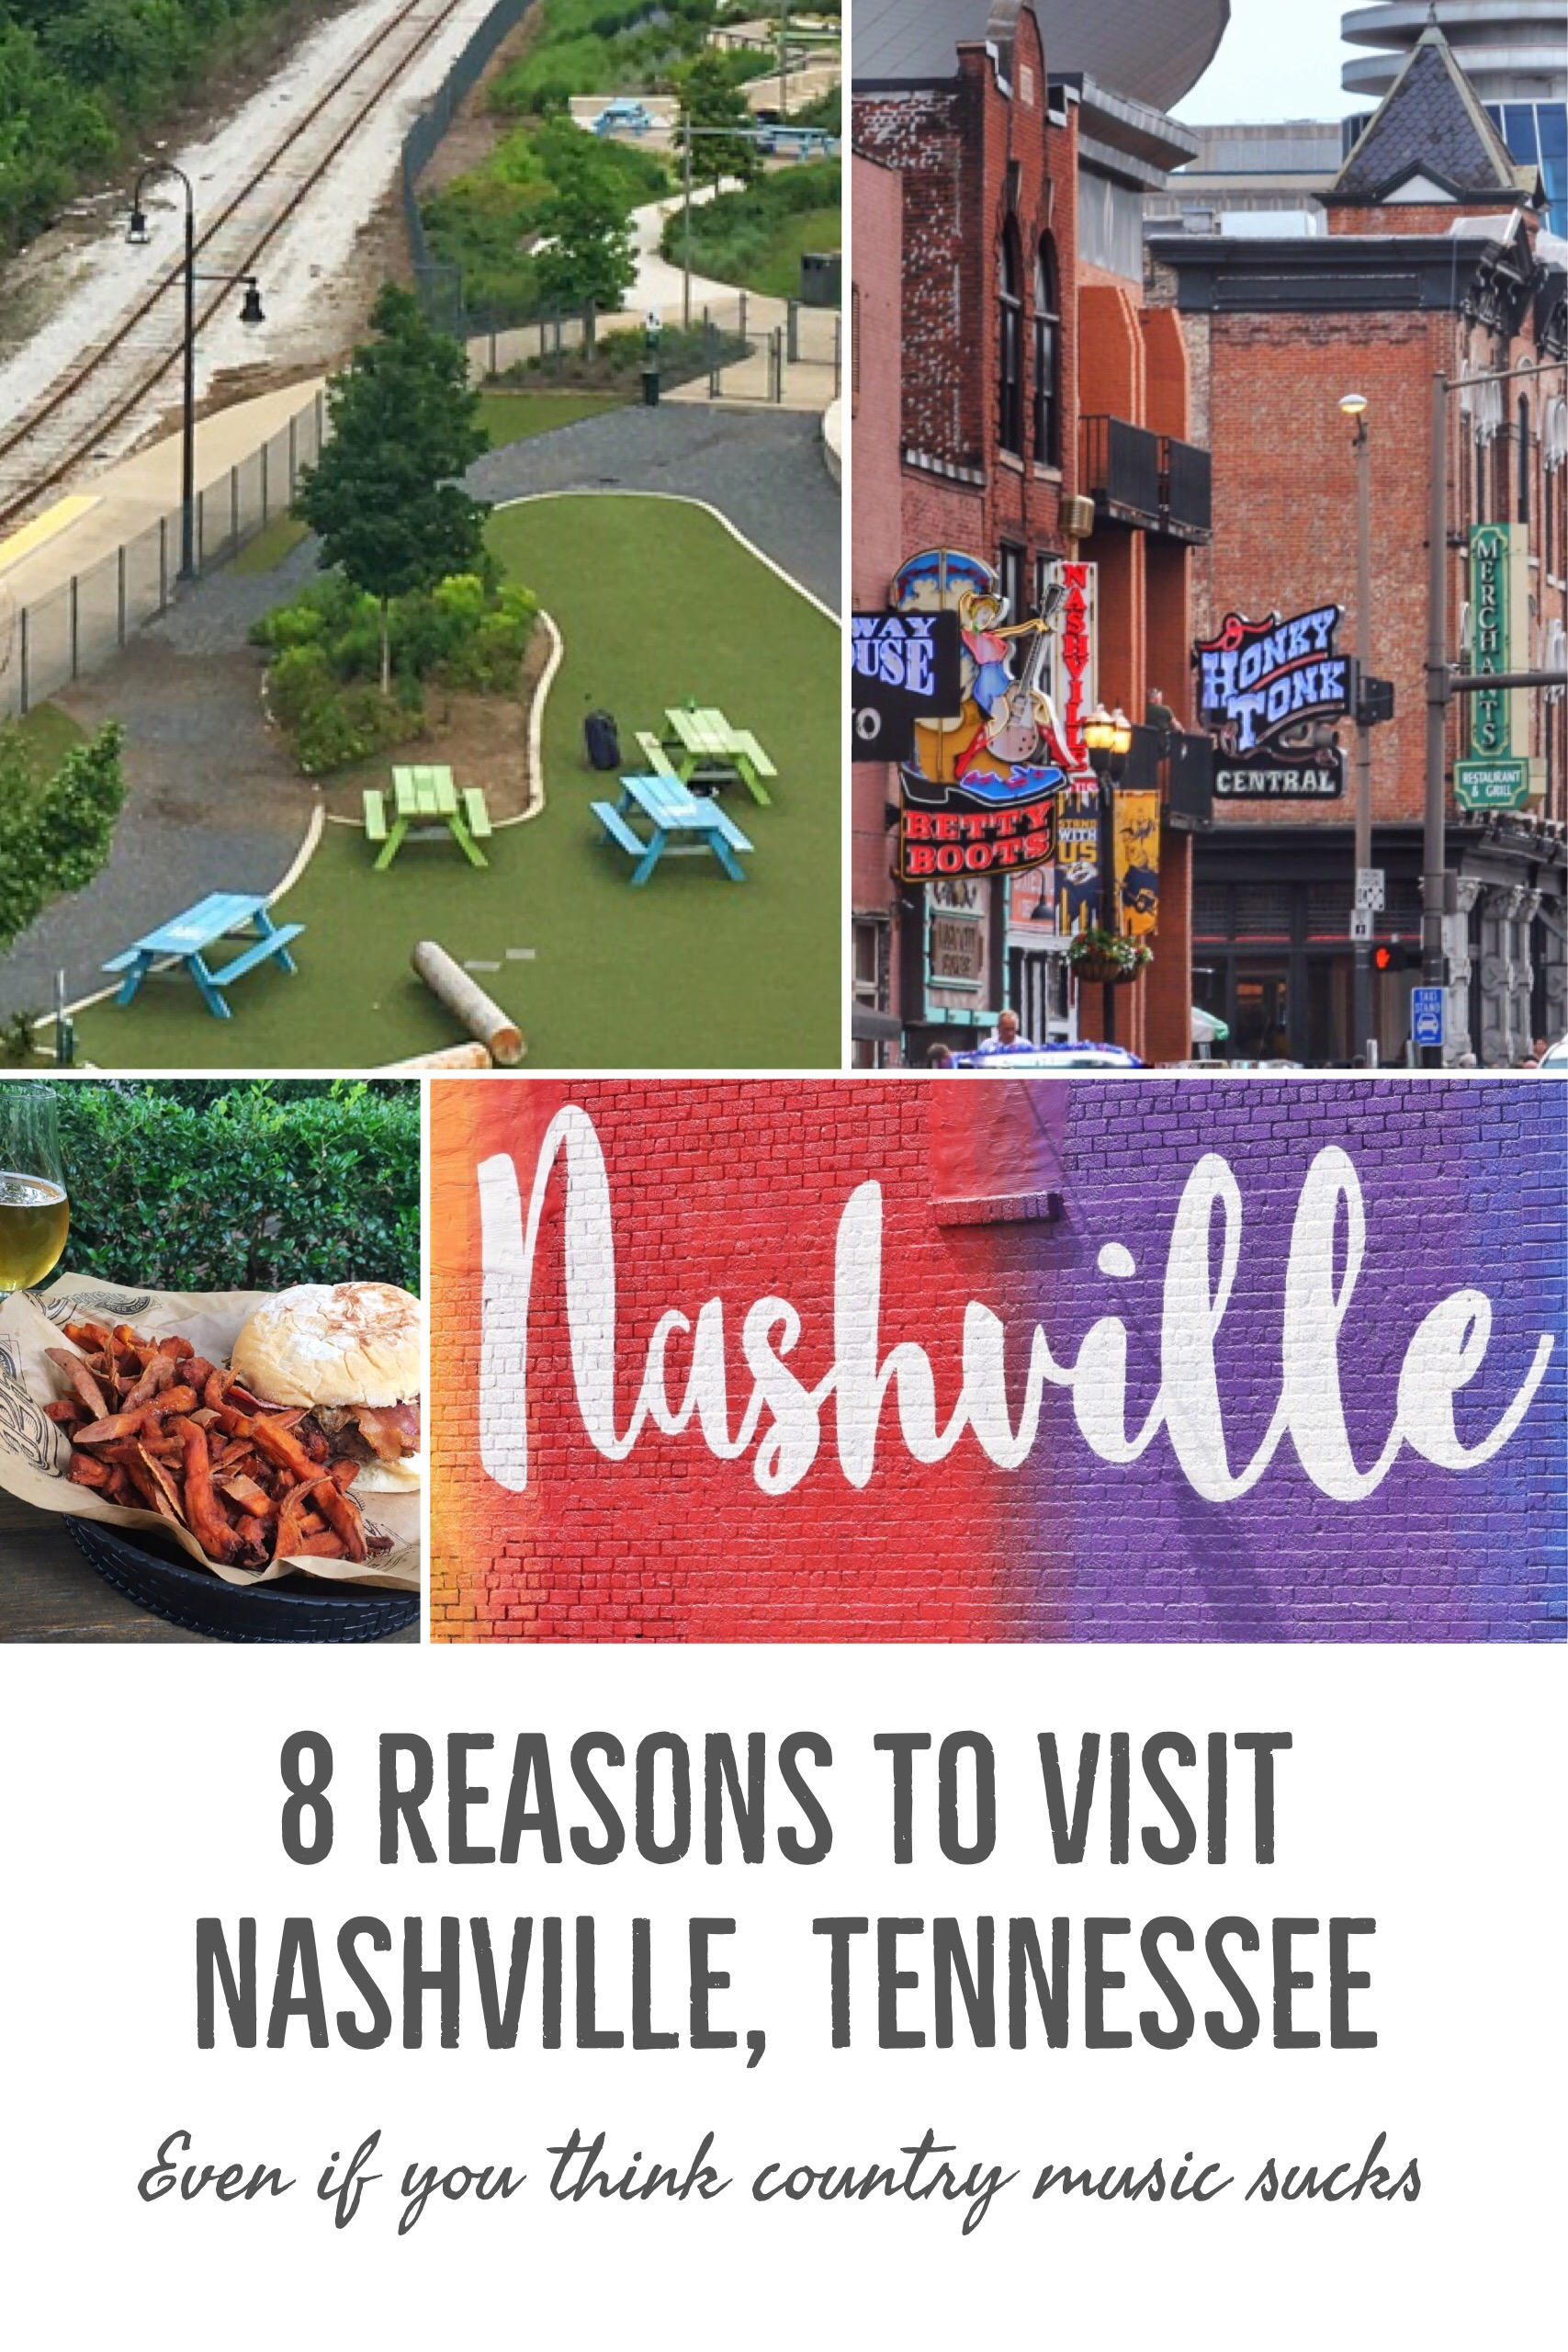 Here are 8 reasons you need to visit Nashville, Tennessee even if you think country music sucks. Music city is great for live music, food, wine, culture, and more. It's so much more than bachelorette parties and country music!